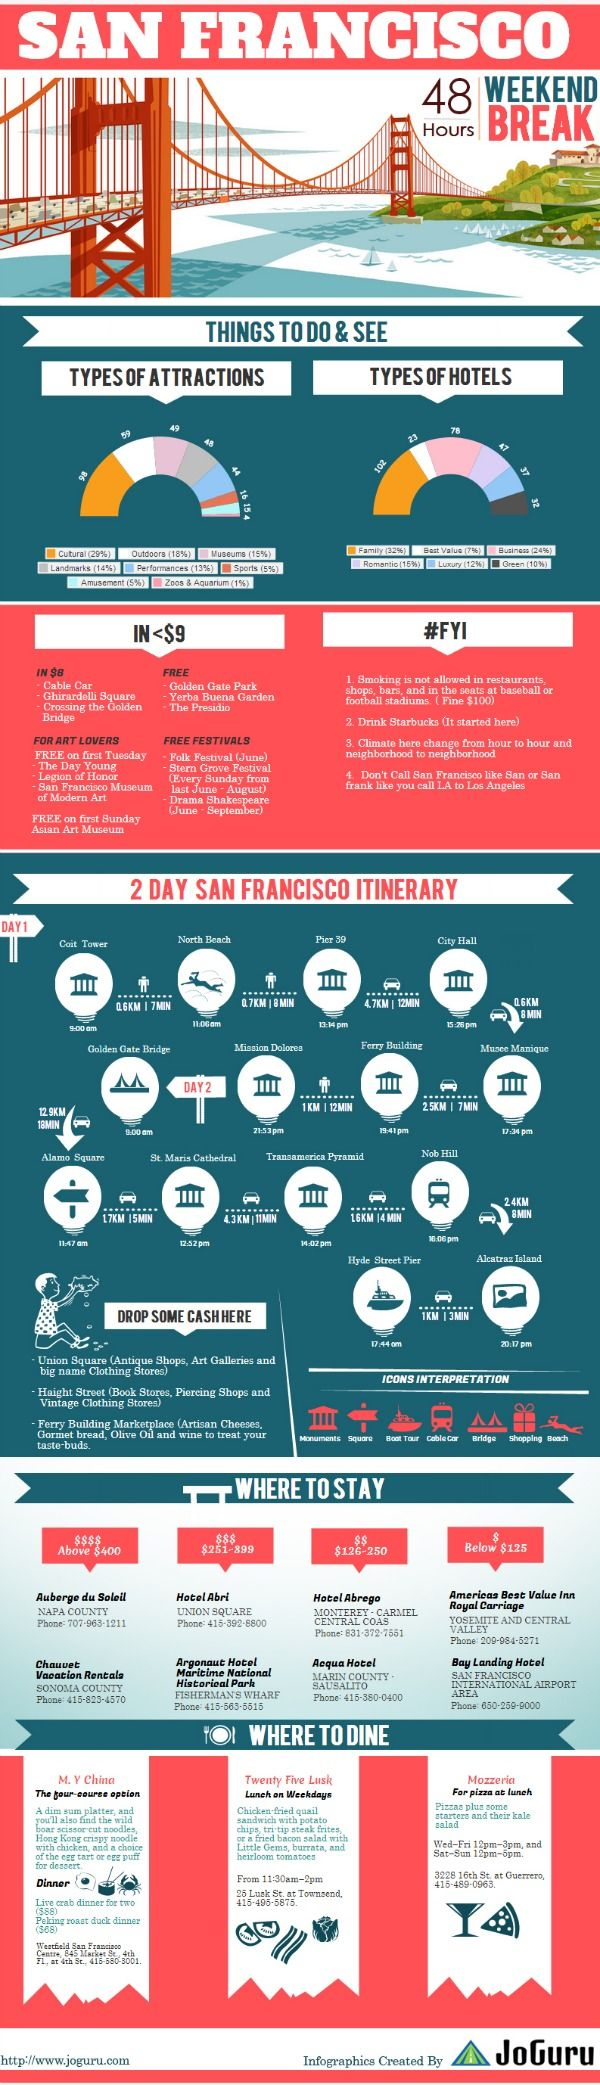 Check out what our friends over atJoGuru put together. It's a two-day itinerary designed to get you to the best sites in San Fran. Check out more details by clicking here: San Francisco Itineraries